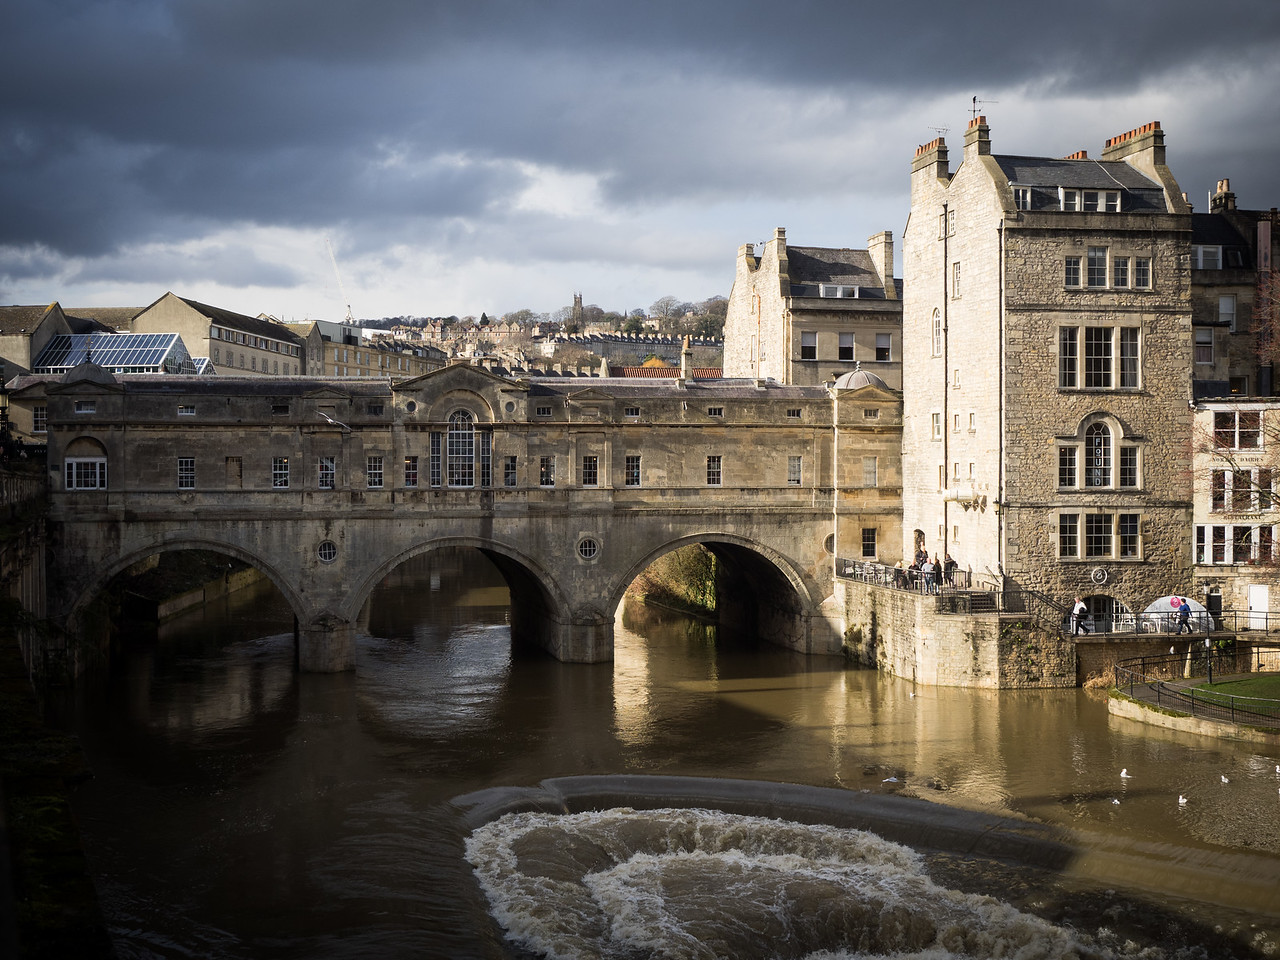 The wonderful Pulteney Bridge, one of only four in the world to have shops along its span on both sides.